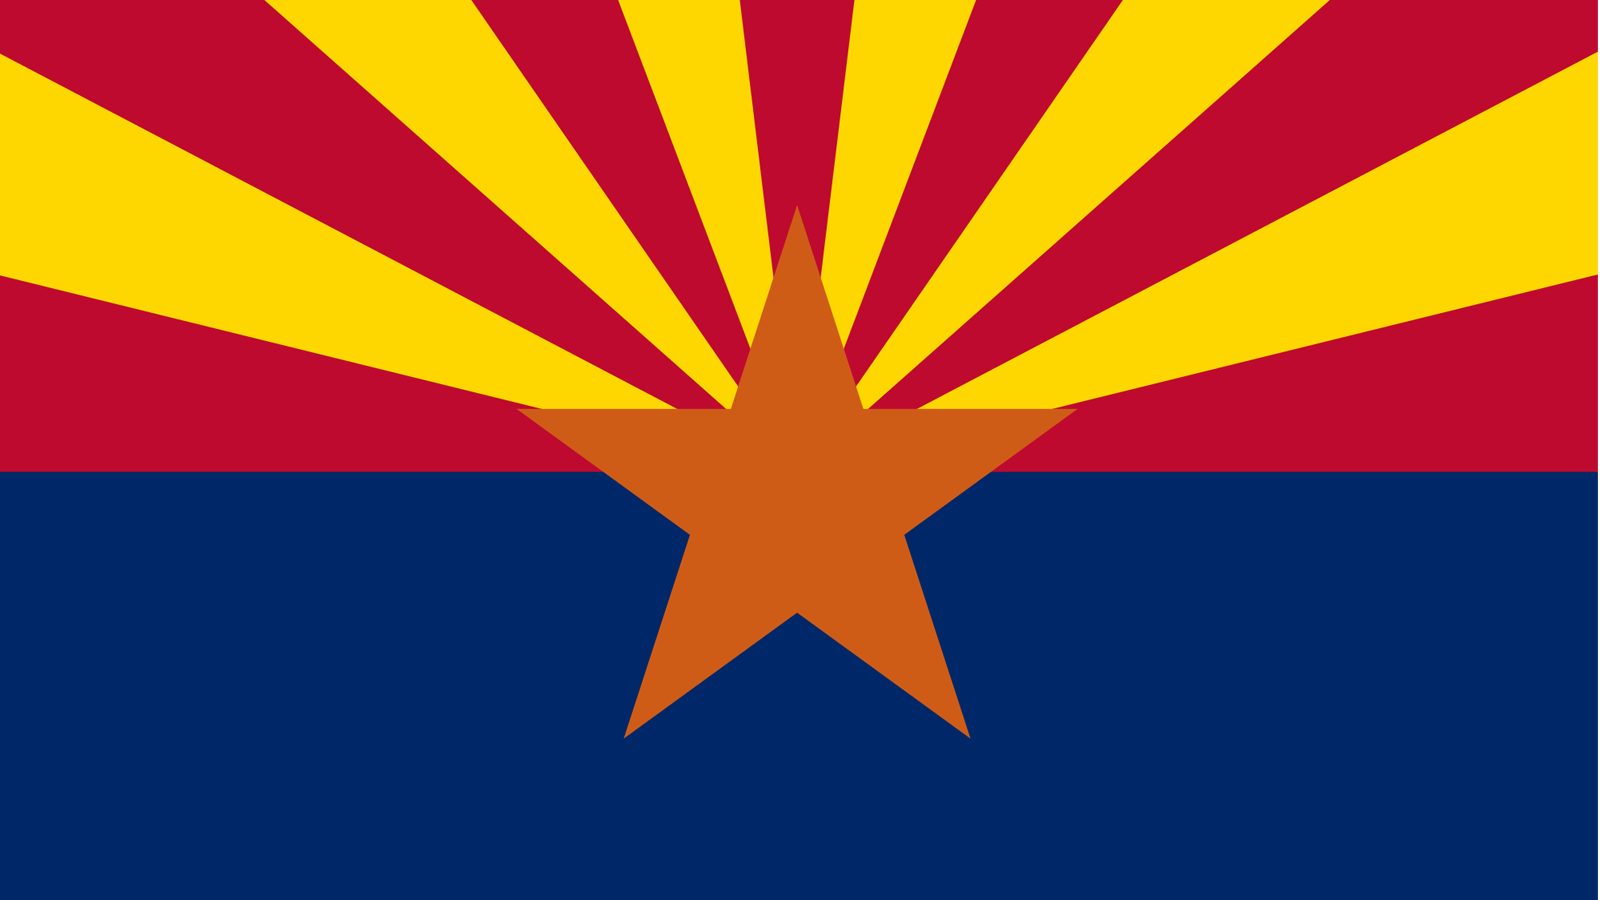 Energised Democrats in Arizona eye an upset in November mid-term elections